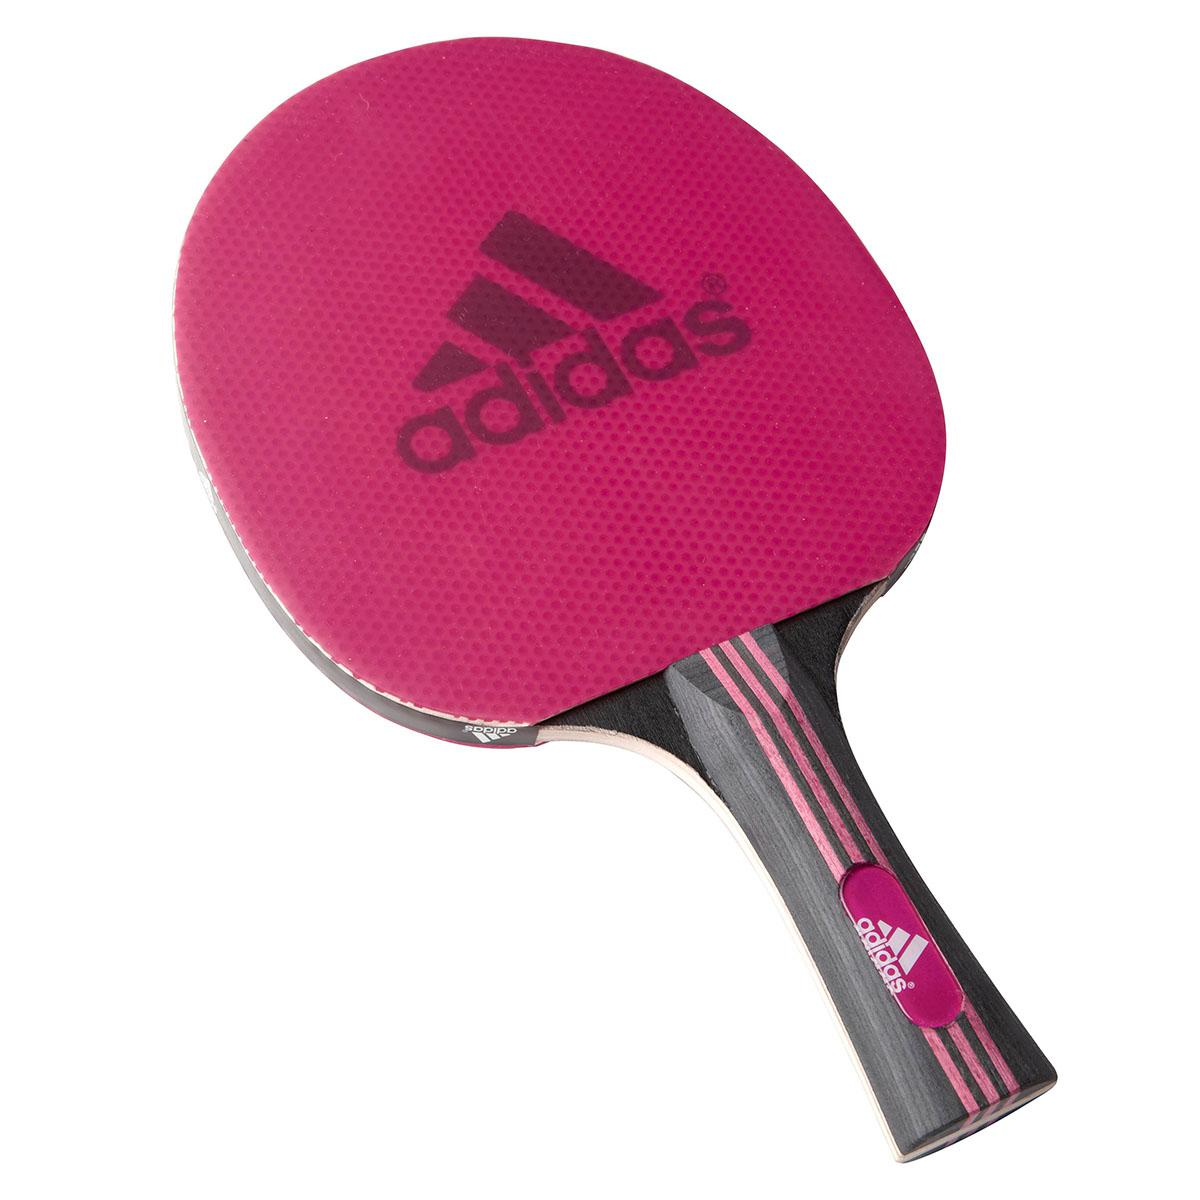 Adidas laser 2 0 table tennis bat various colours for Table tennis 6 0